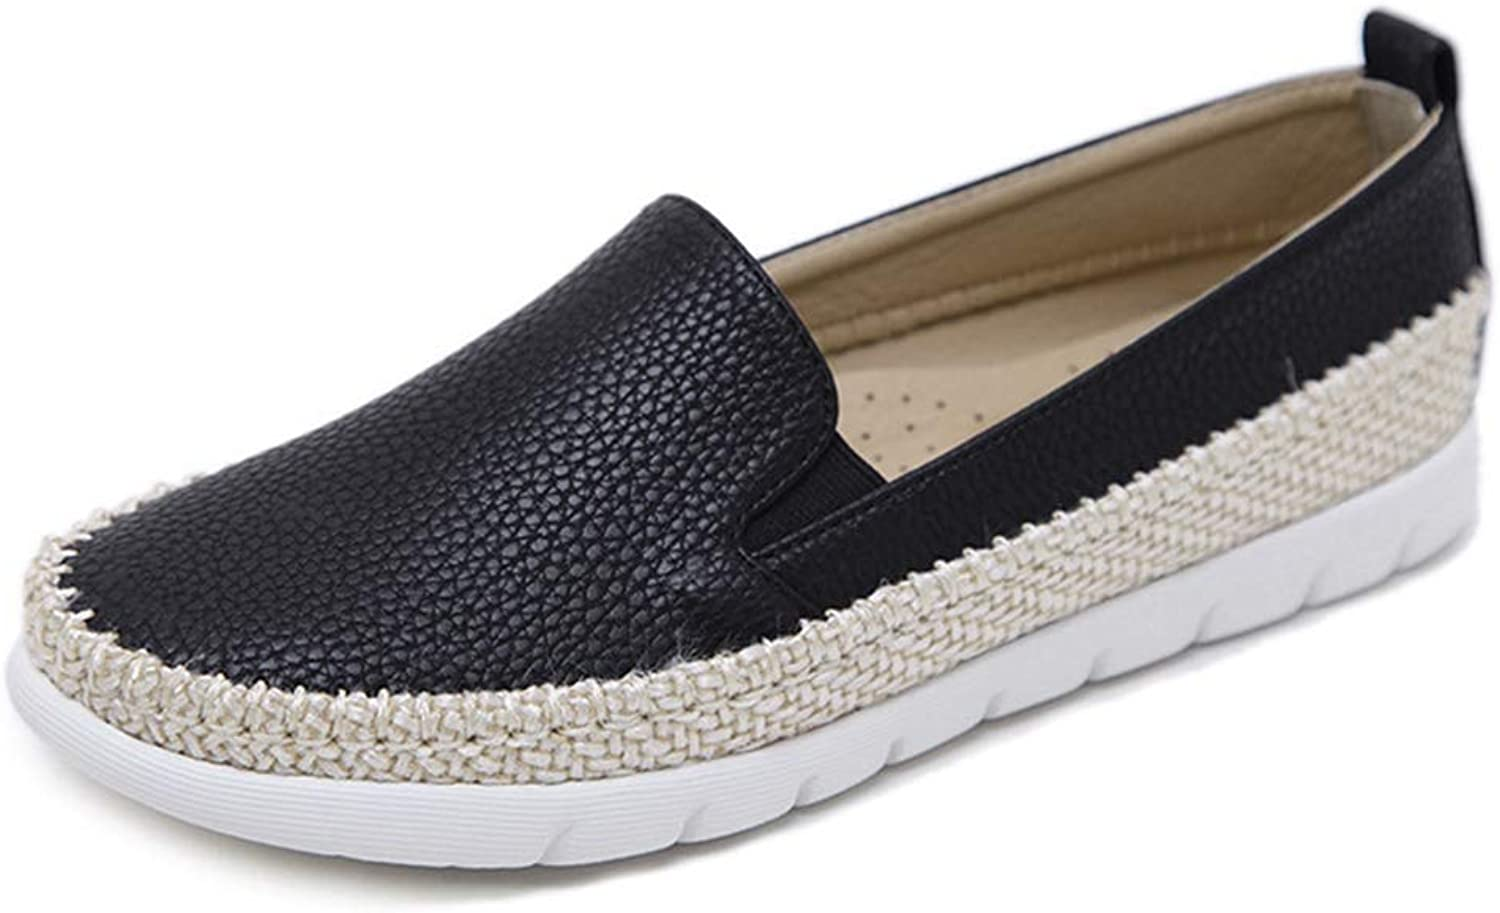 CYBLING Women's Slip On Loafers Classic Suede Driving shoes Espadrilles Casual Flats